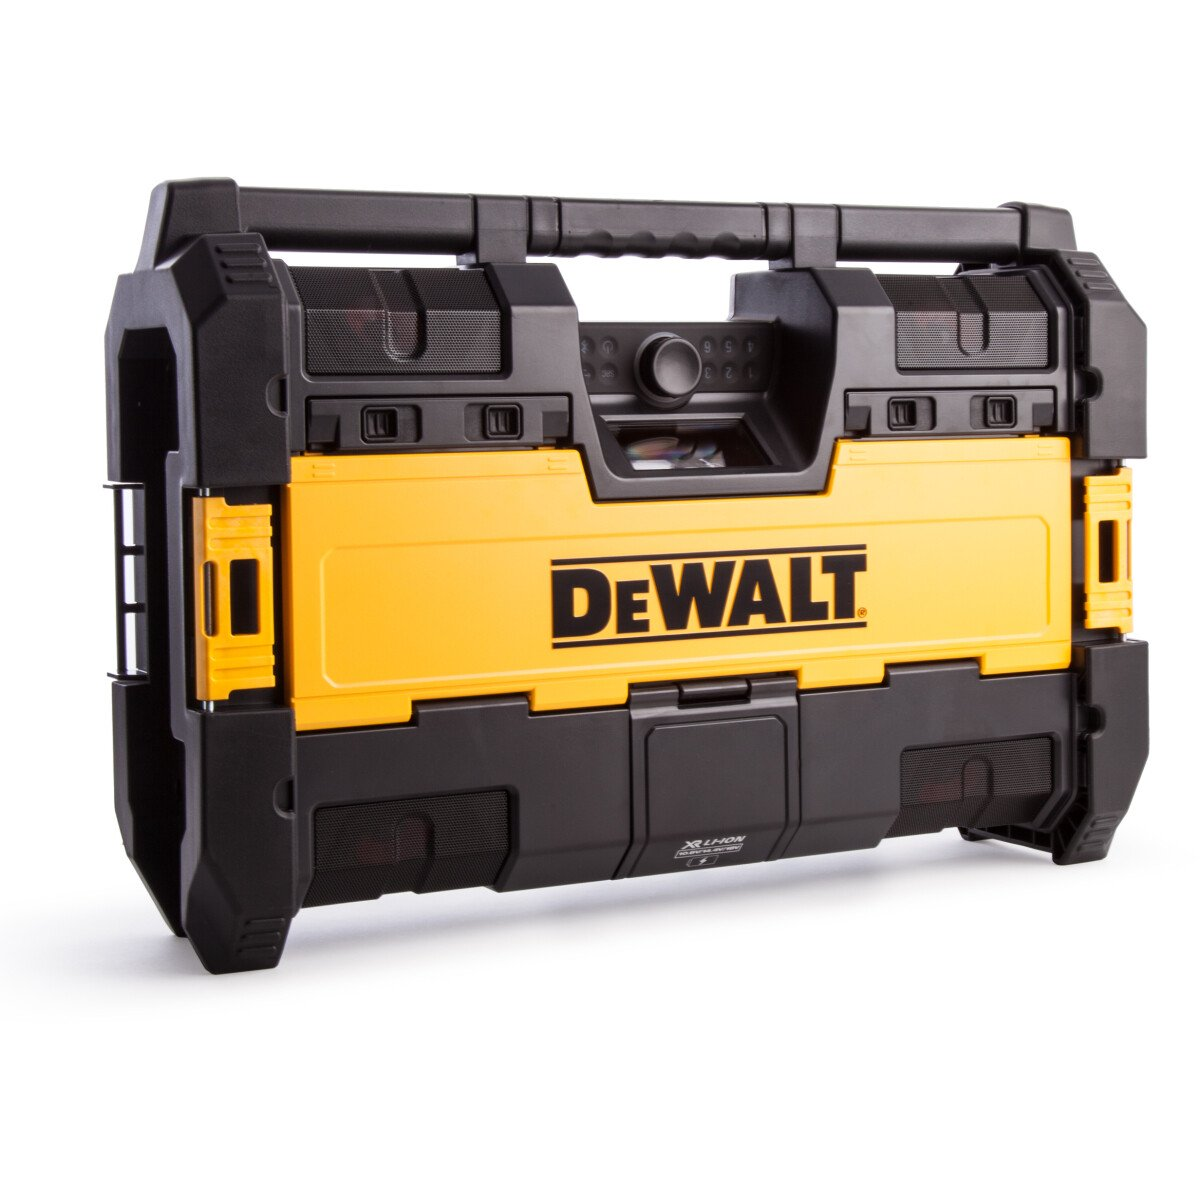 Dewalt DWST1-75663 Body Only Toughsystem Radio DAB+ with 6 Speakers, Bluetooth and USB